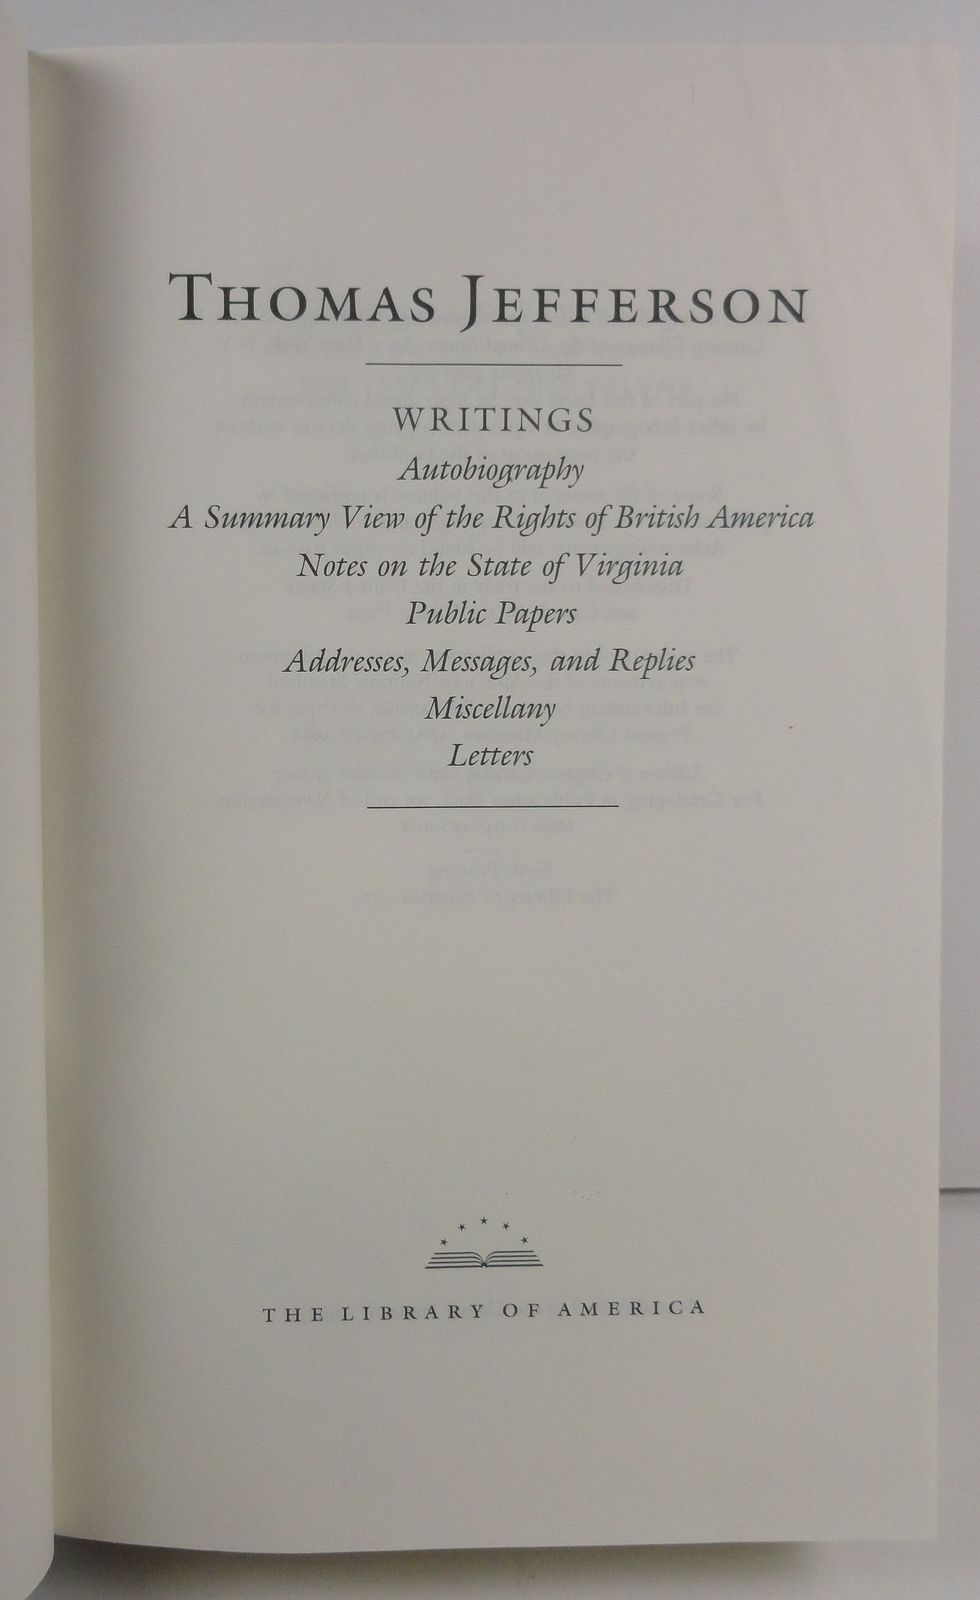 Thomas Jefferson Writings 1984 Library of America